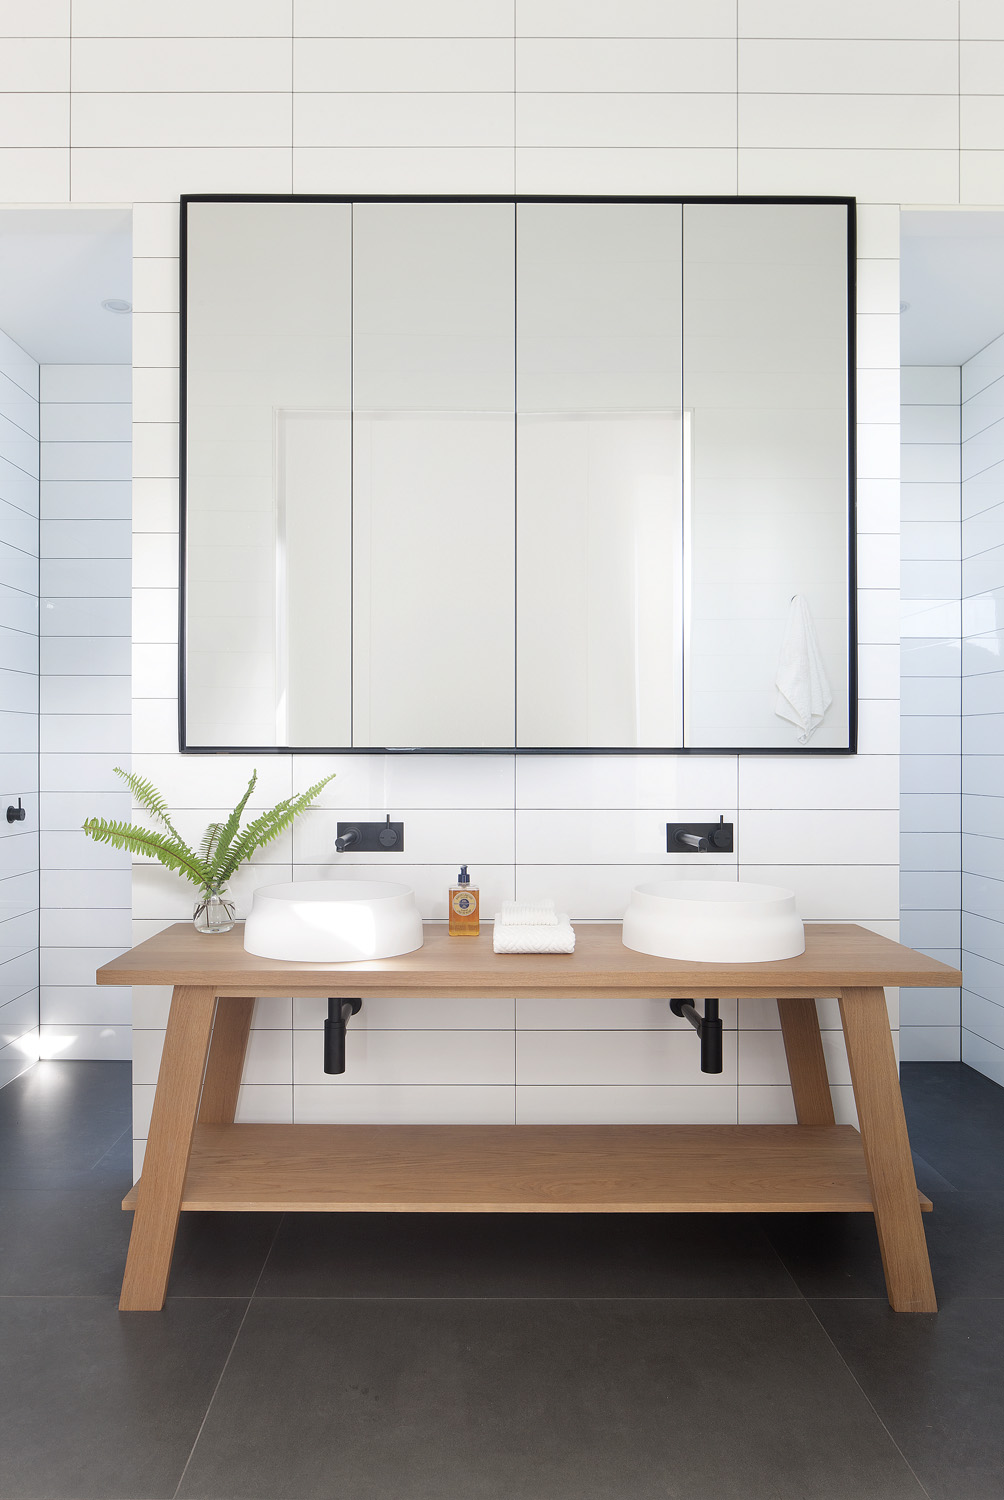 Large-format tiles make the bathroom appear more spacious